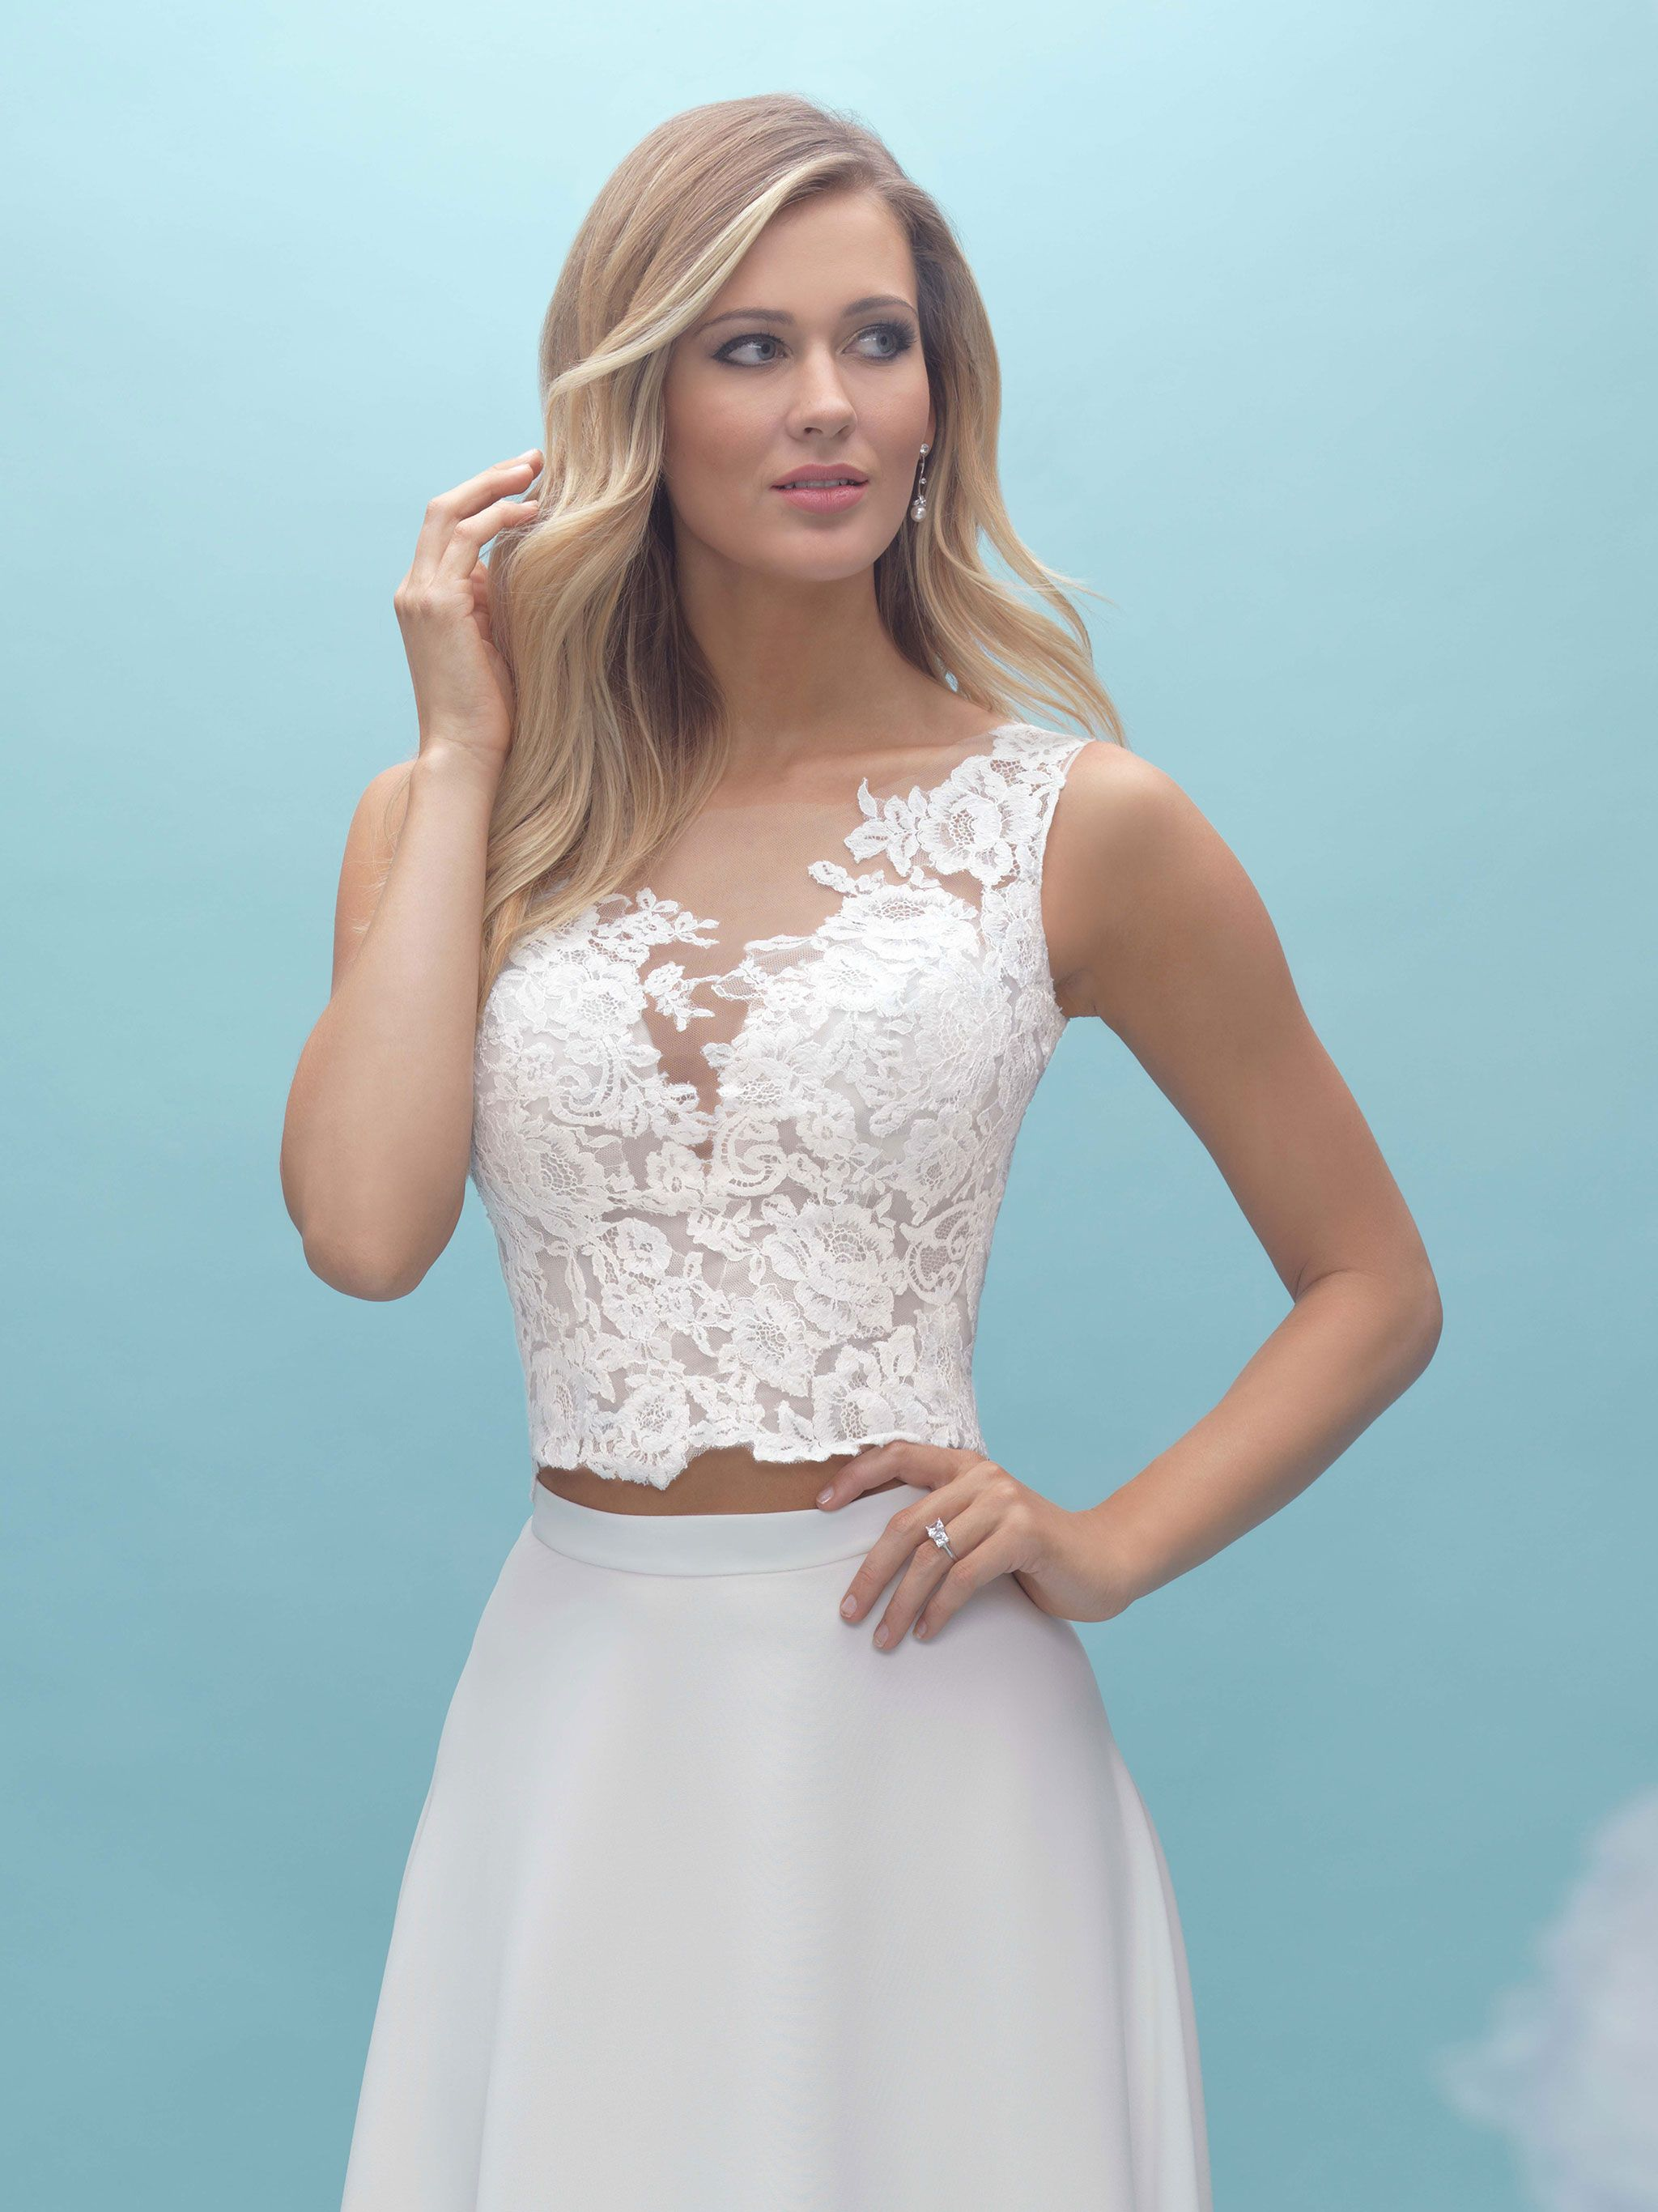 Allure separate top A2030   Our Allure Bridal Gowns   Pinterest ...